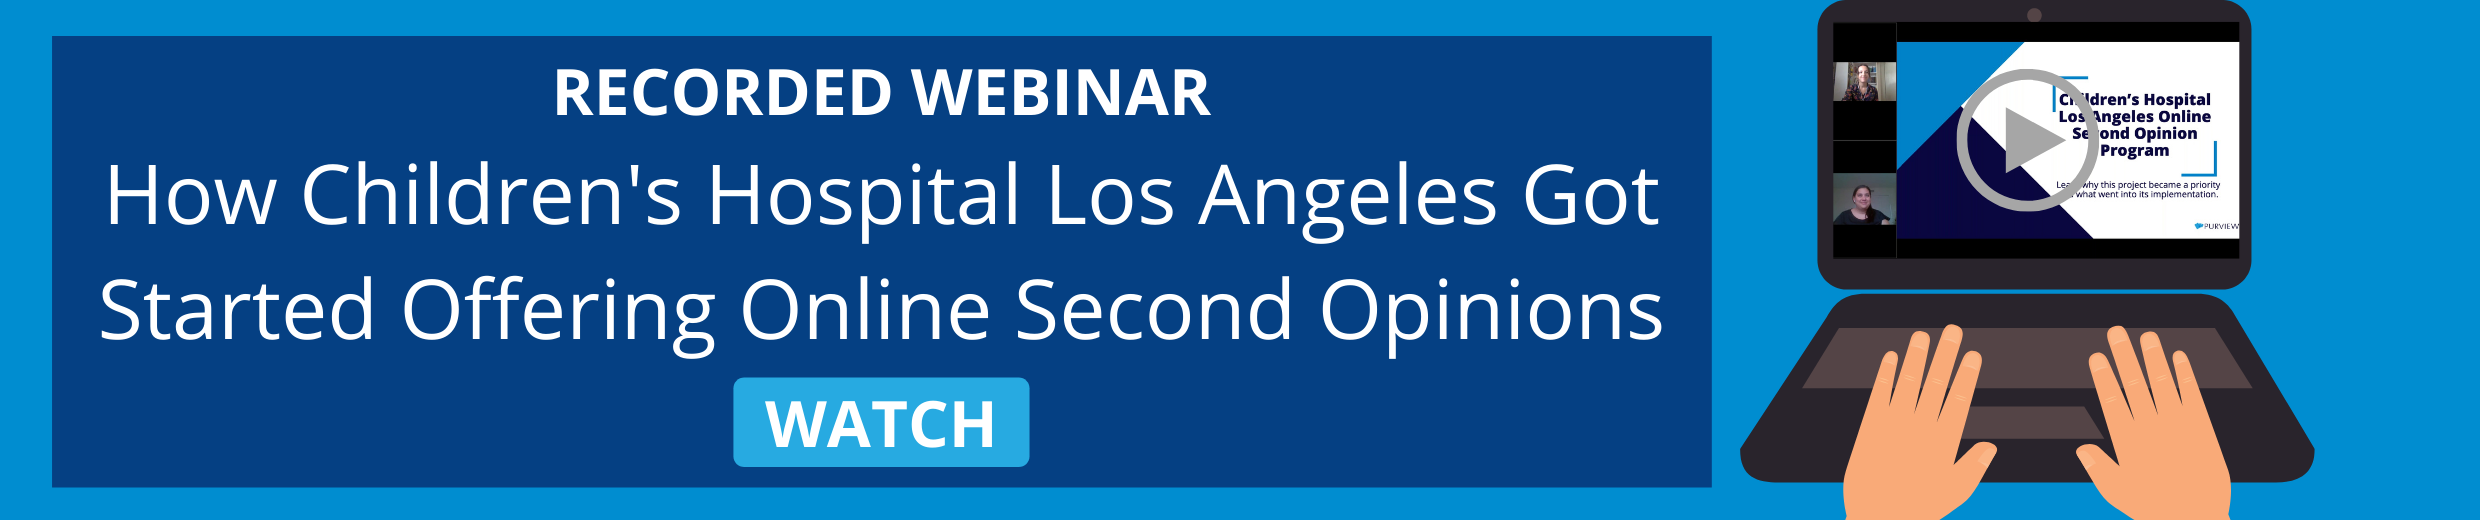 LEARN HOW CHILDRENS HOSPITAL LOS ANGELES GOT STARTED OFFERING REMOTE SECOND OPINIONS